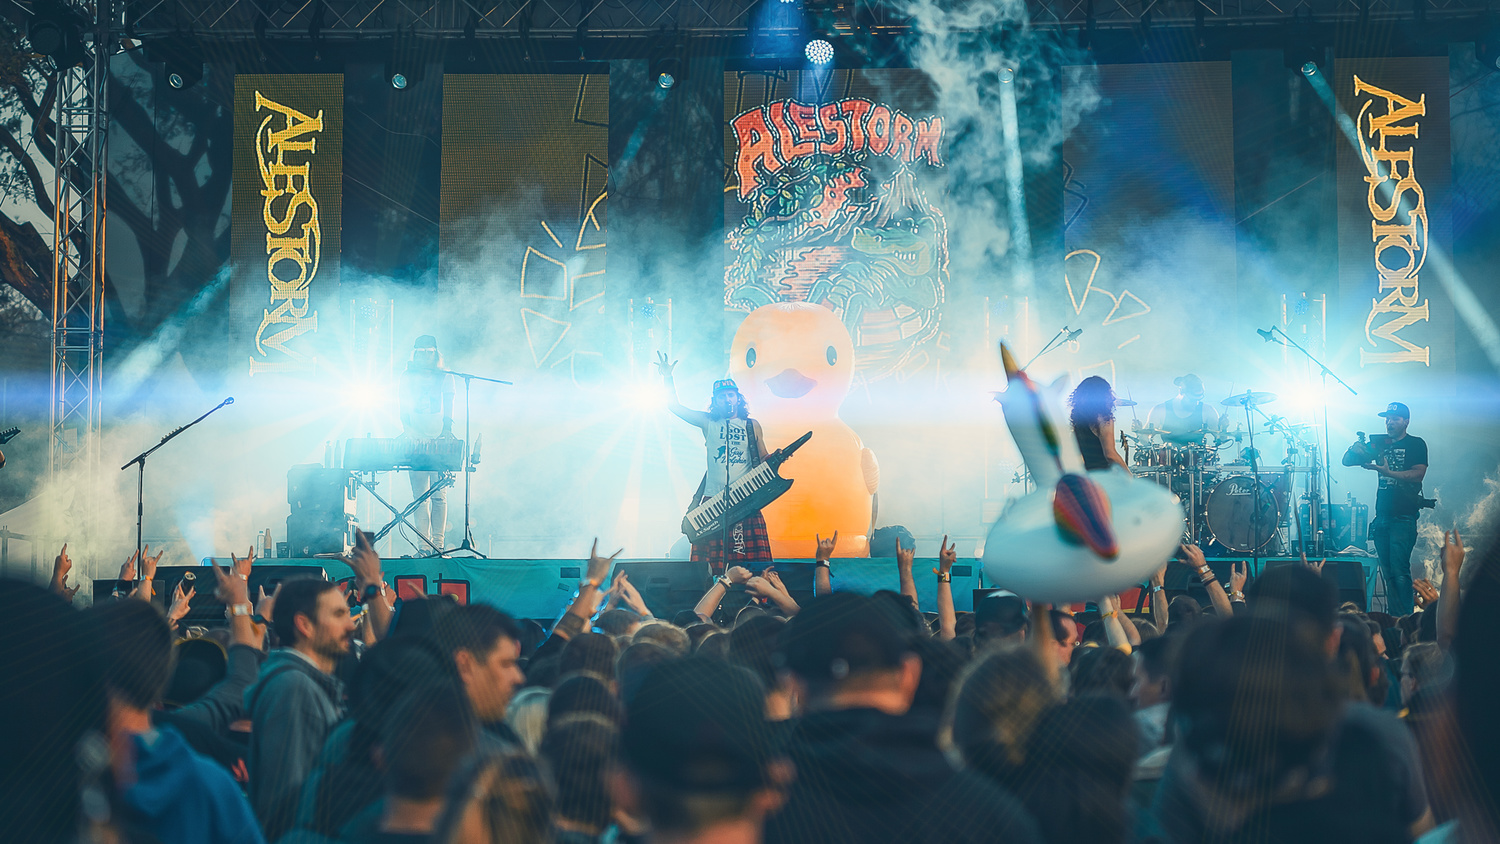 Alestorm captured by The Image Engineer, Live in Johannesburg